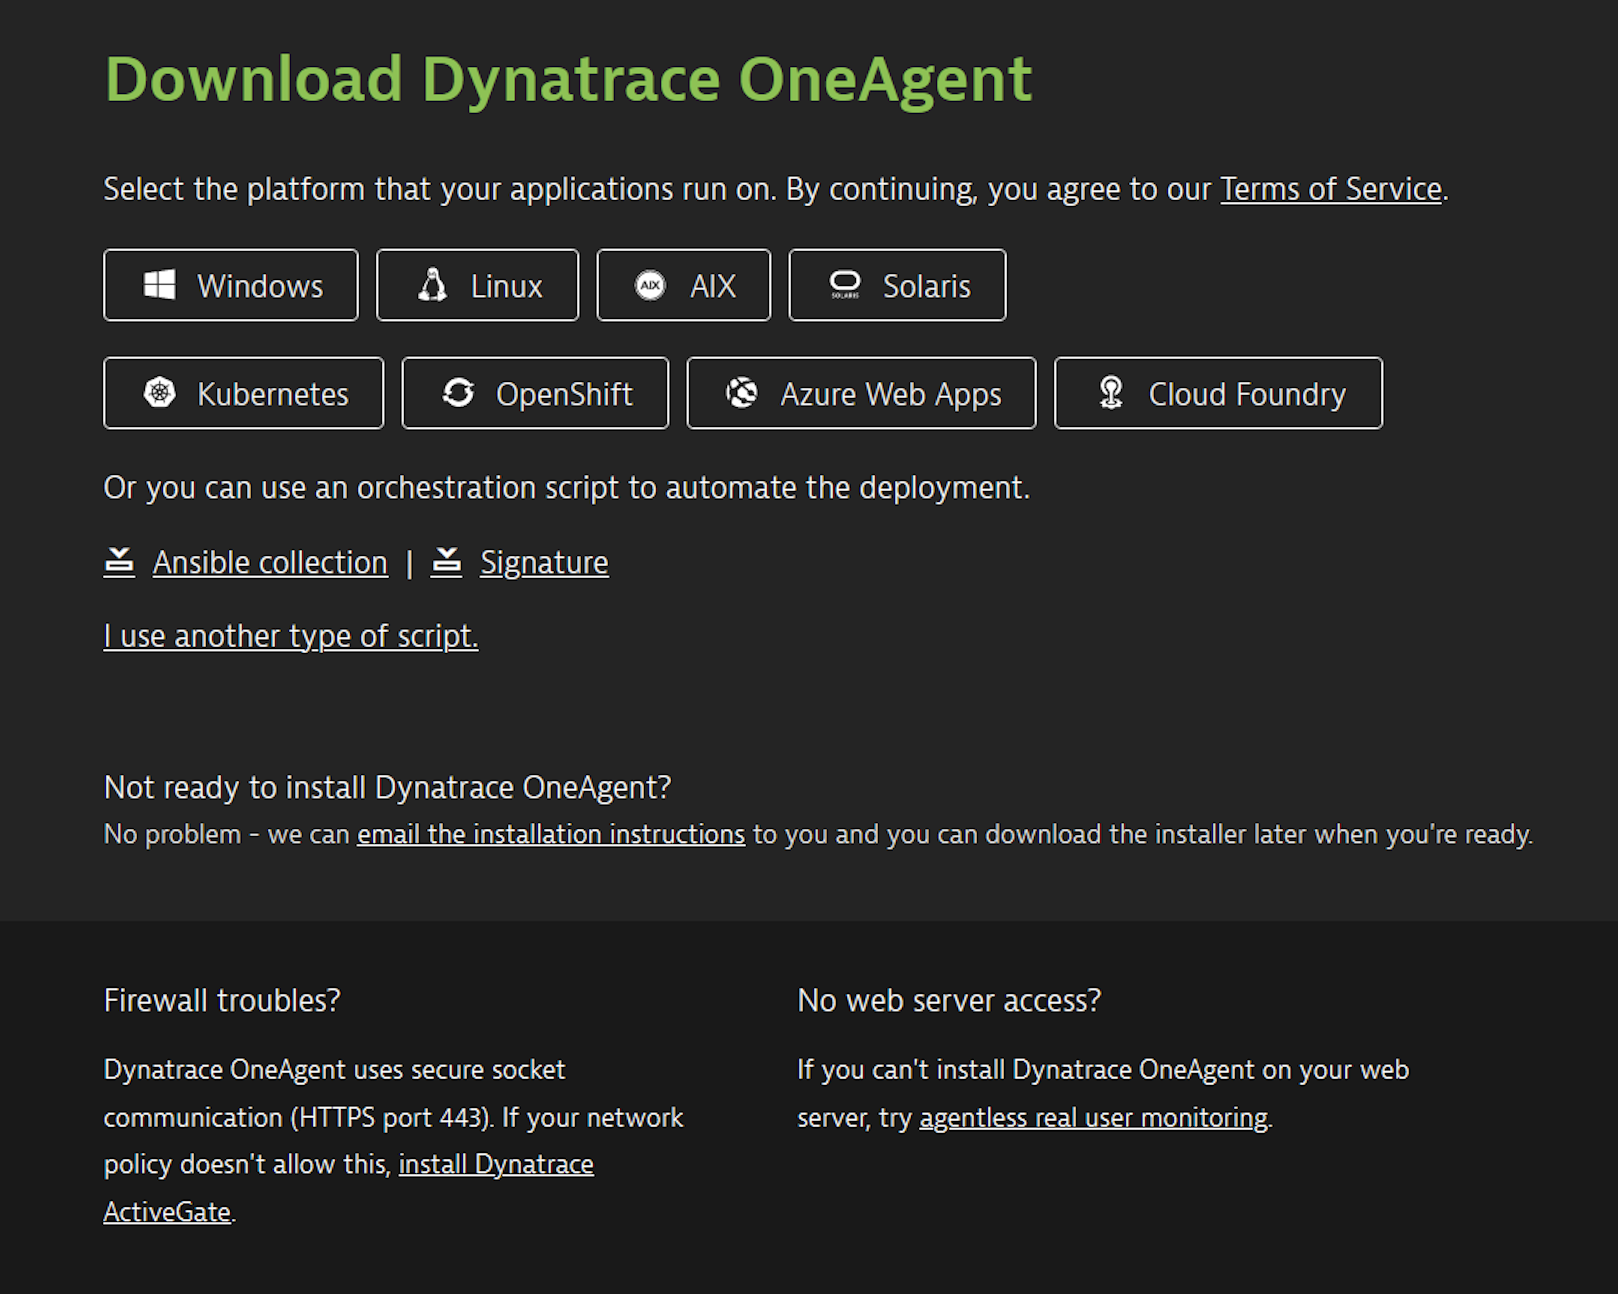 Ansible collection on the Dynatrace download page